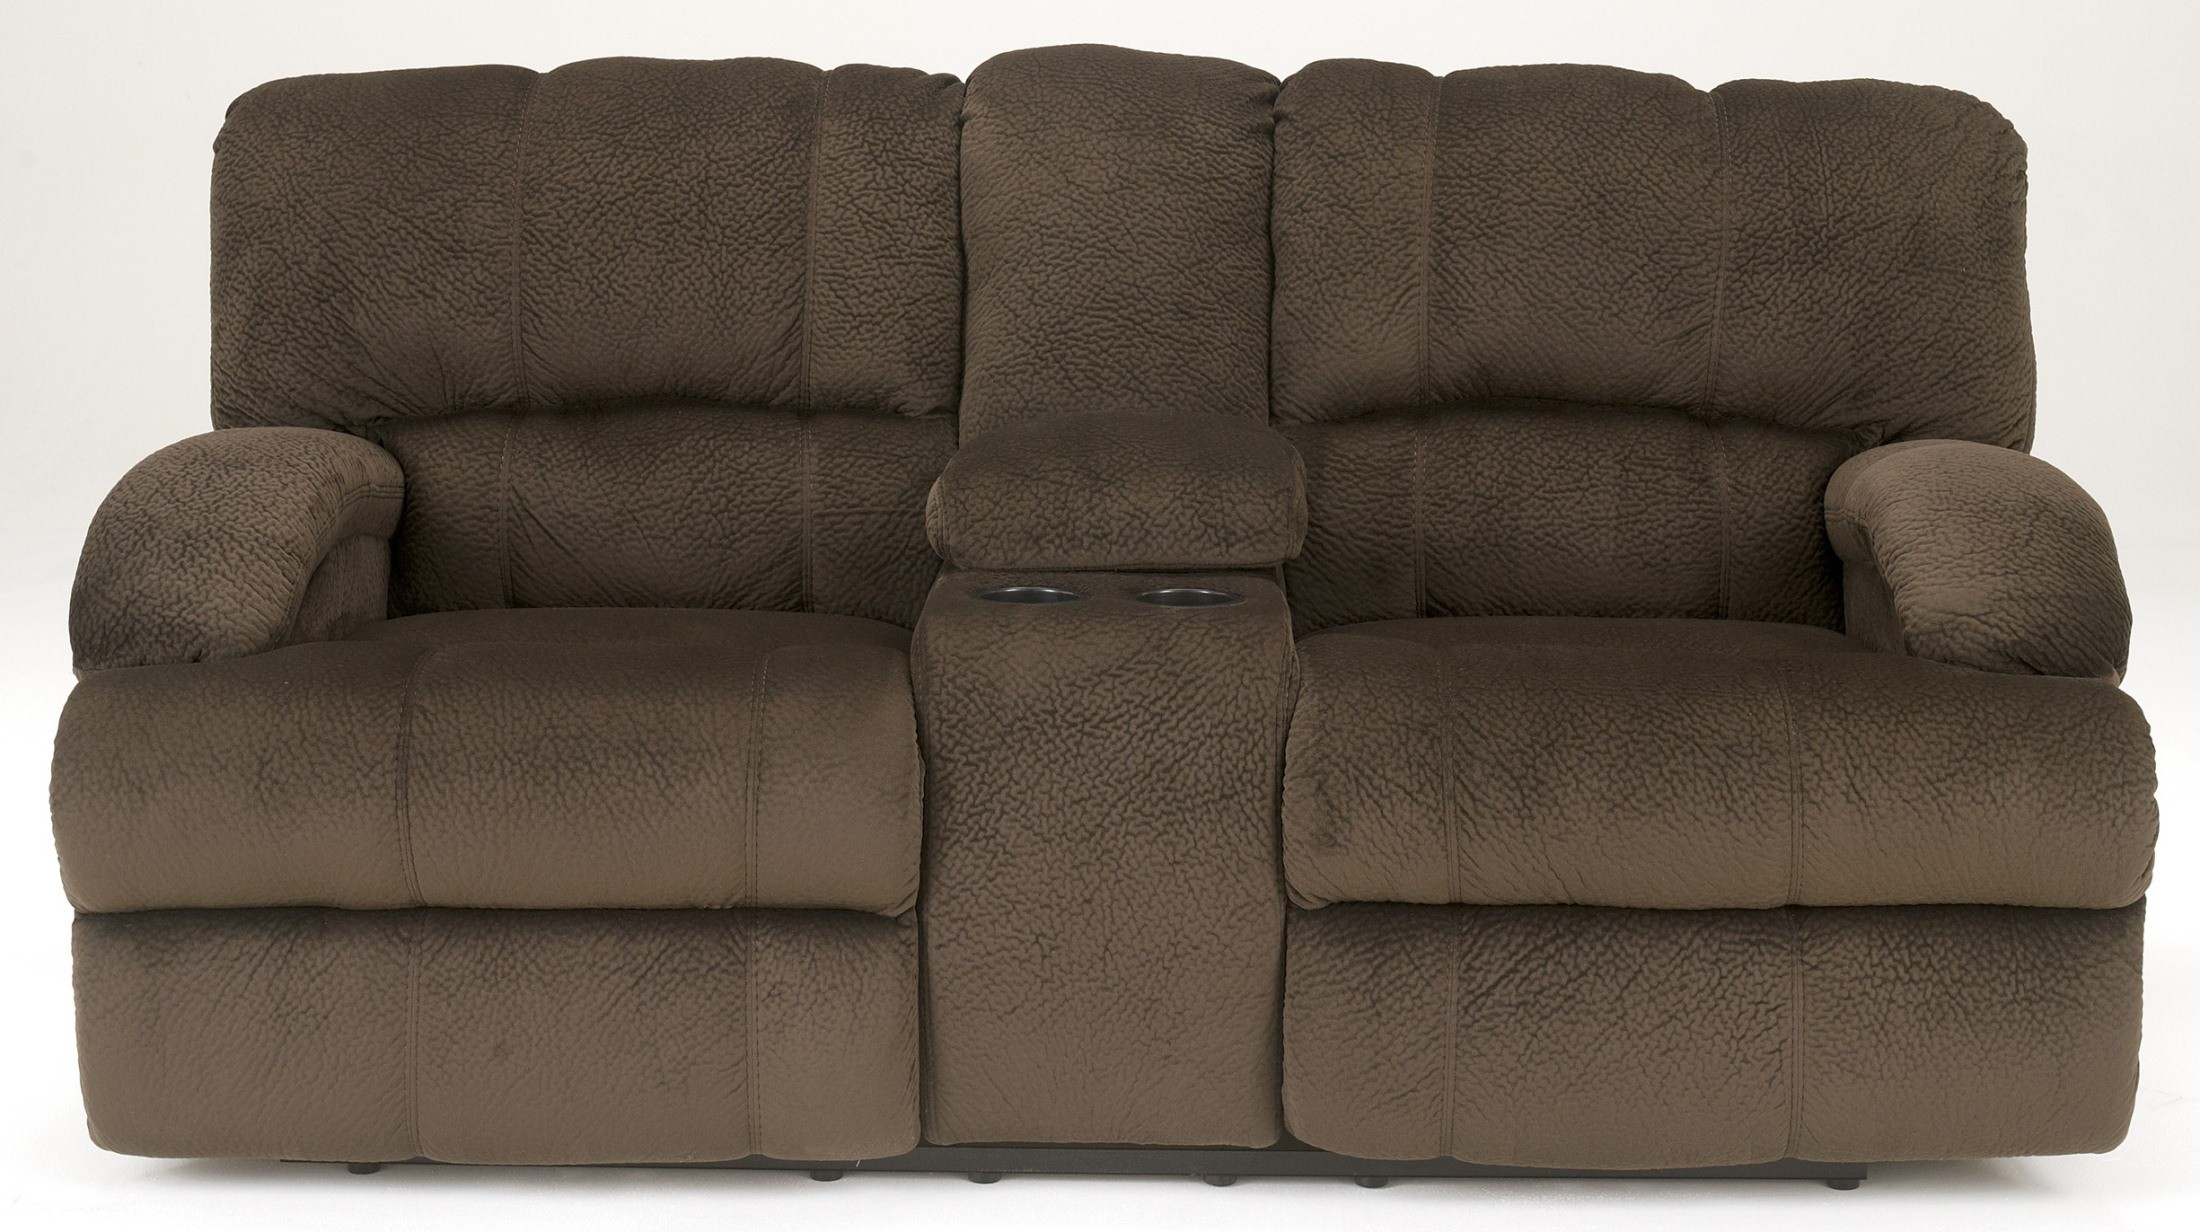 Kiska Chocolate Double Power Reclining Loveseat With Console 1910296 Signature Design By Ashley